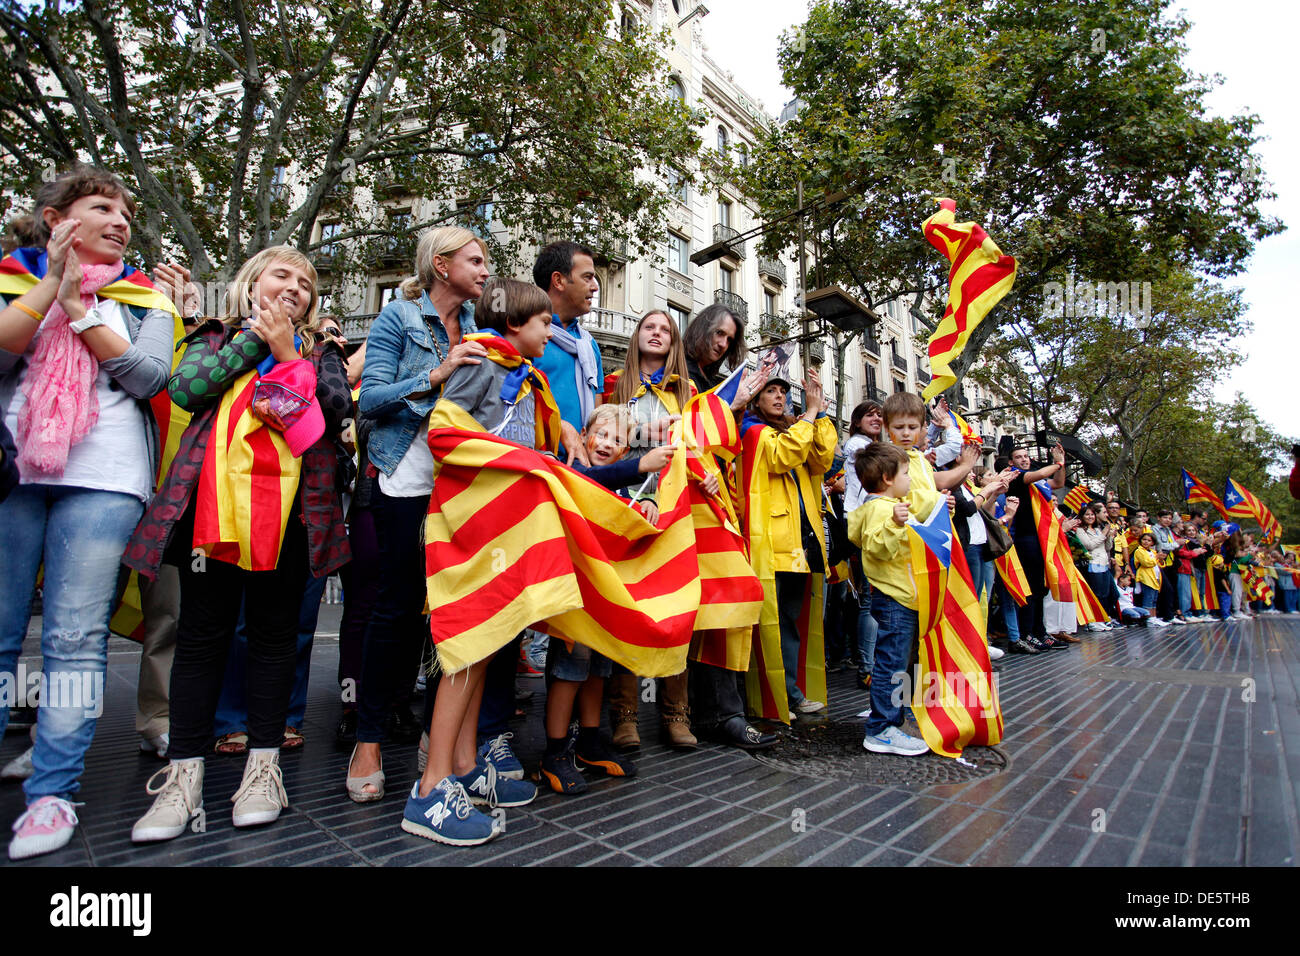 Barcelona, Spain. 11th September 2013. People form a human chain in Barcelona, Spain during The National Day of Catalonia on September 11, 2013 in Barcelona, Spain. The Spanish region of Catalonia has been celebrating its national day known as La Diada amid demonstrations and renewed calls for independence. In an attempt to muster support for secession hundreds of thousands of people have formed a 400km long human chain across the region to press for a vote on independence from Spain. © dpa picture alliance/Alamy Live News - Stock Image